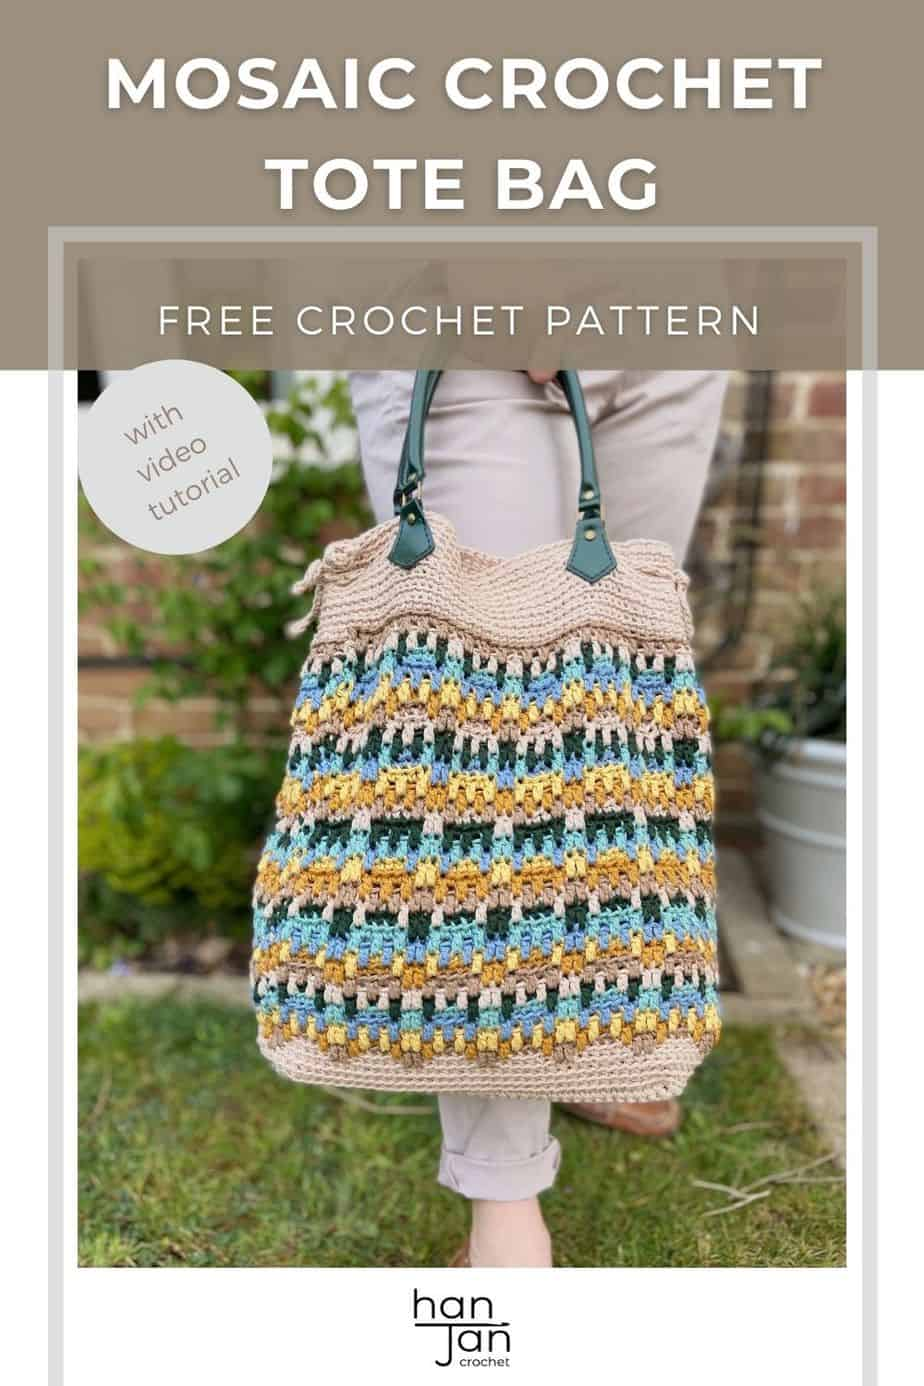 image of summer crochet tote bag with green handles against woman's legs